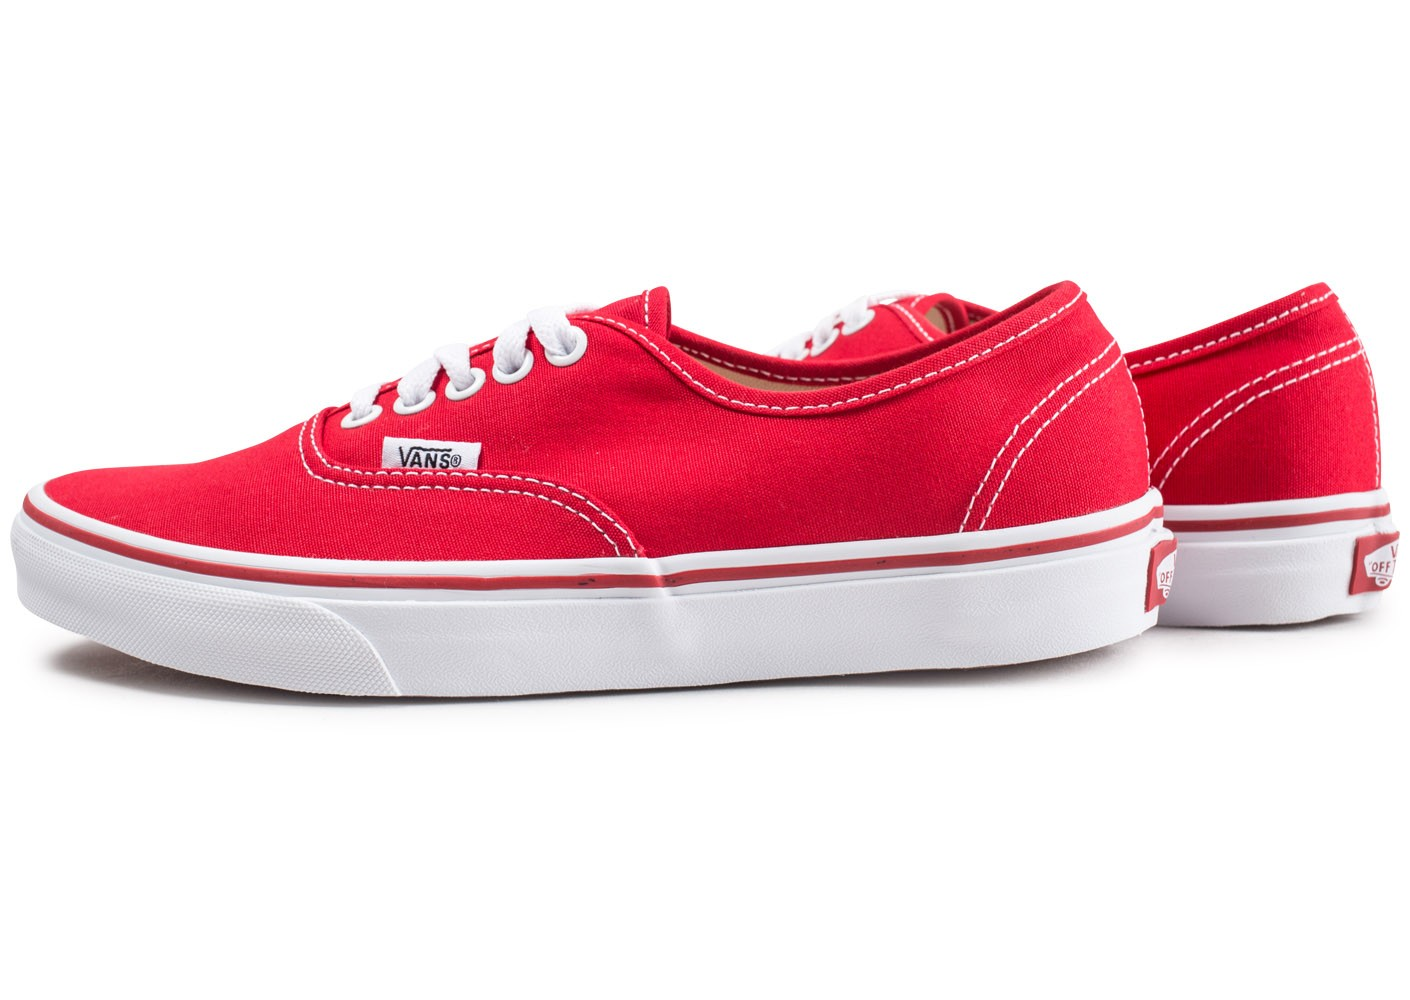 Rouge Chausport At Qwgsg71 Baskets Chaussures Vans Authentic Homme Yyf67gb